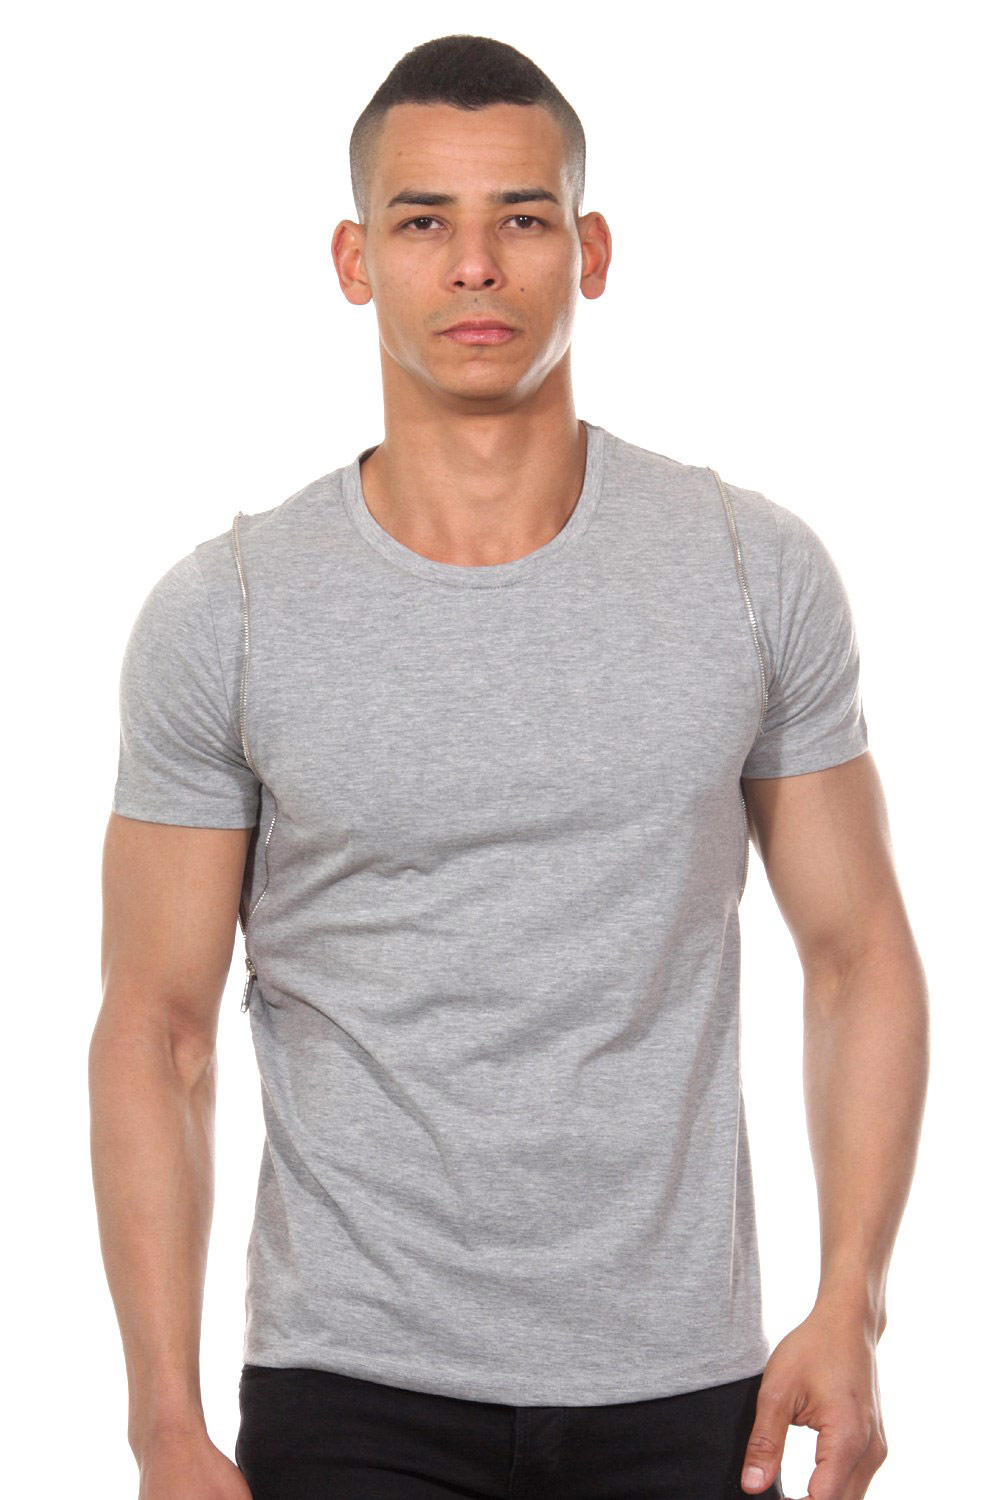 OPEN t-shirt at oboy.com